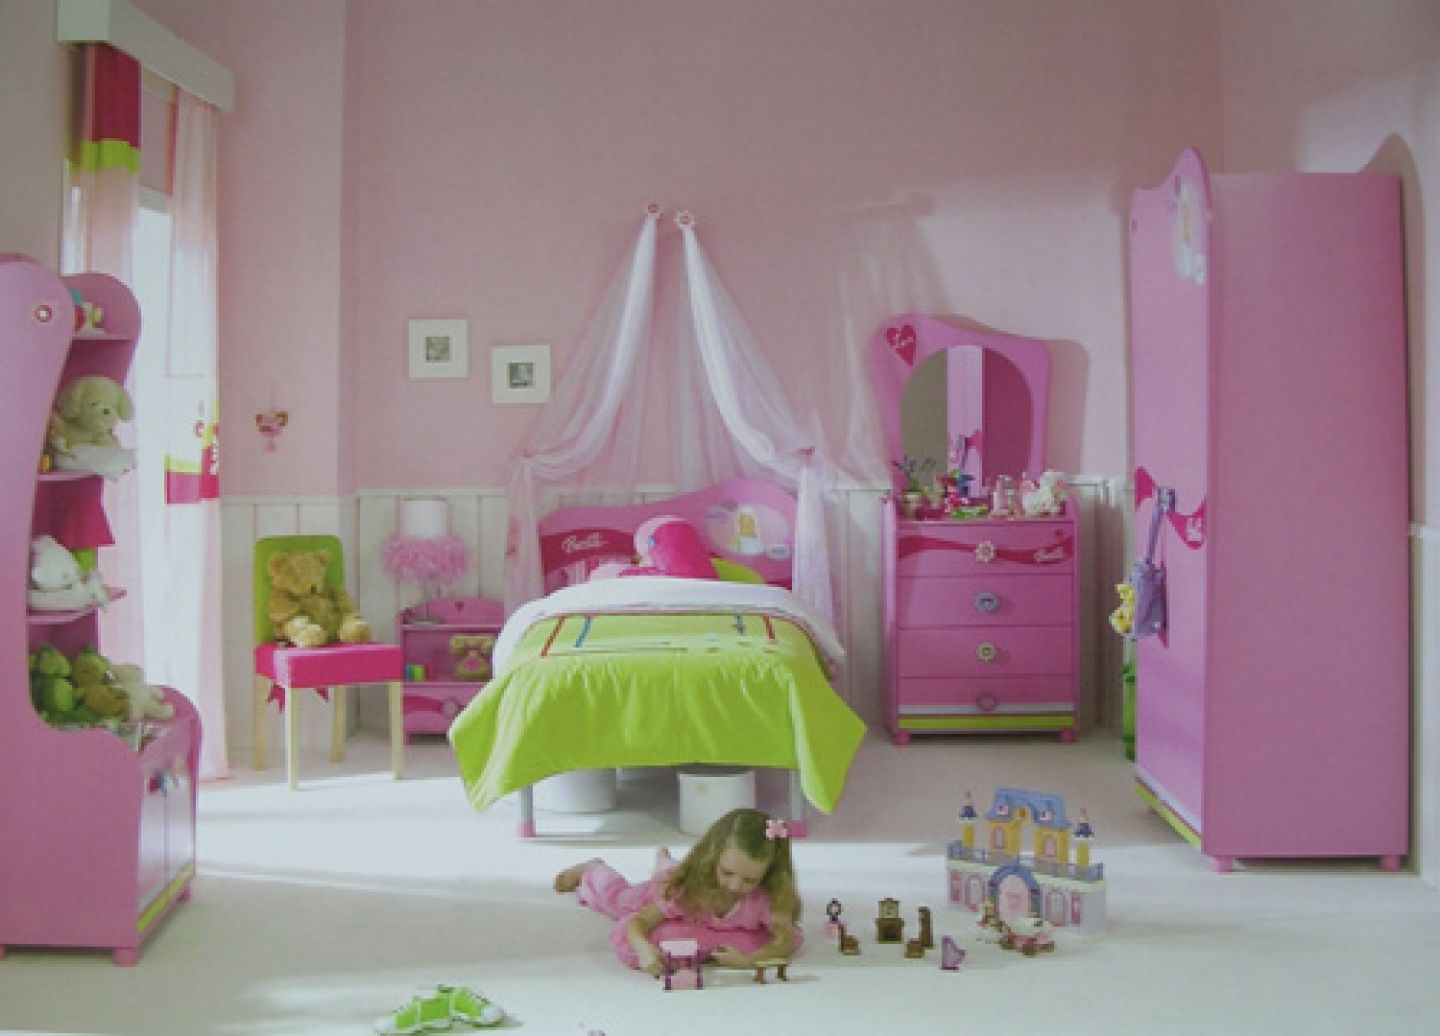 Little Girl Bedroom Ideas Painting seriously 3,288 little girl bedroom painting ideas design